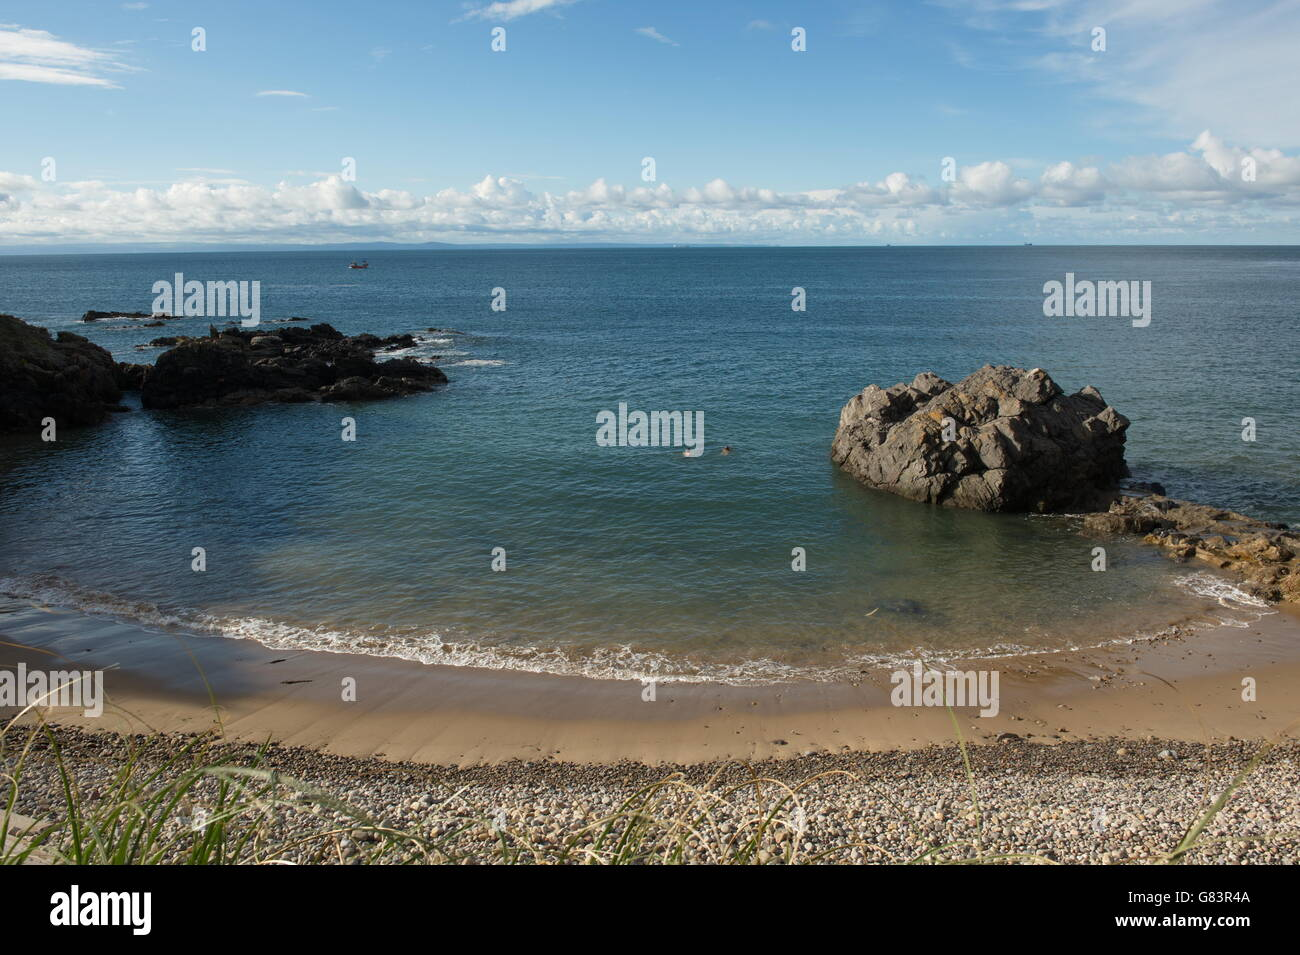 Bathers in a horse shoe shaped bay at Langland, Gower, Wales - Stock Image